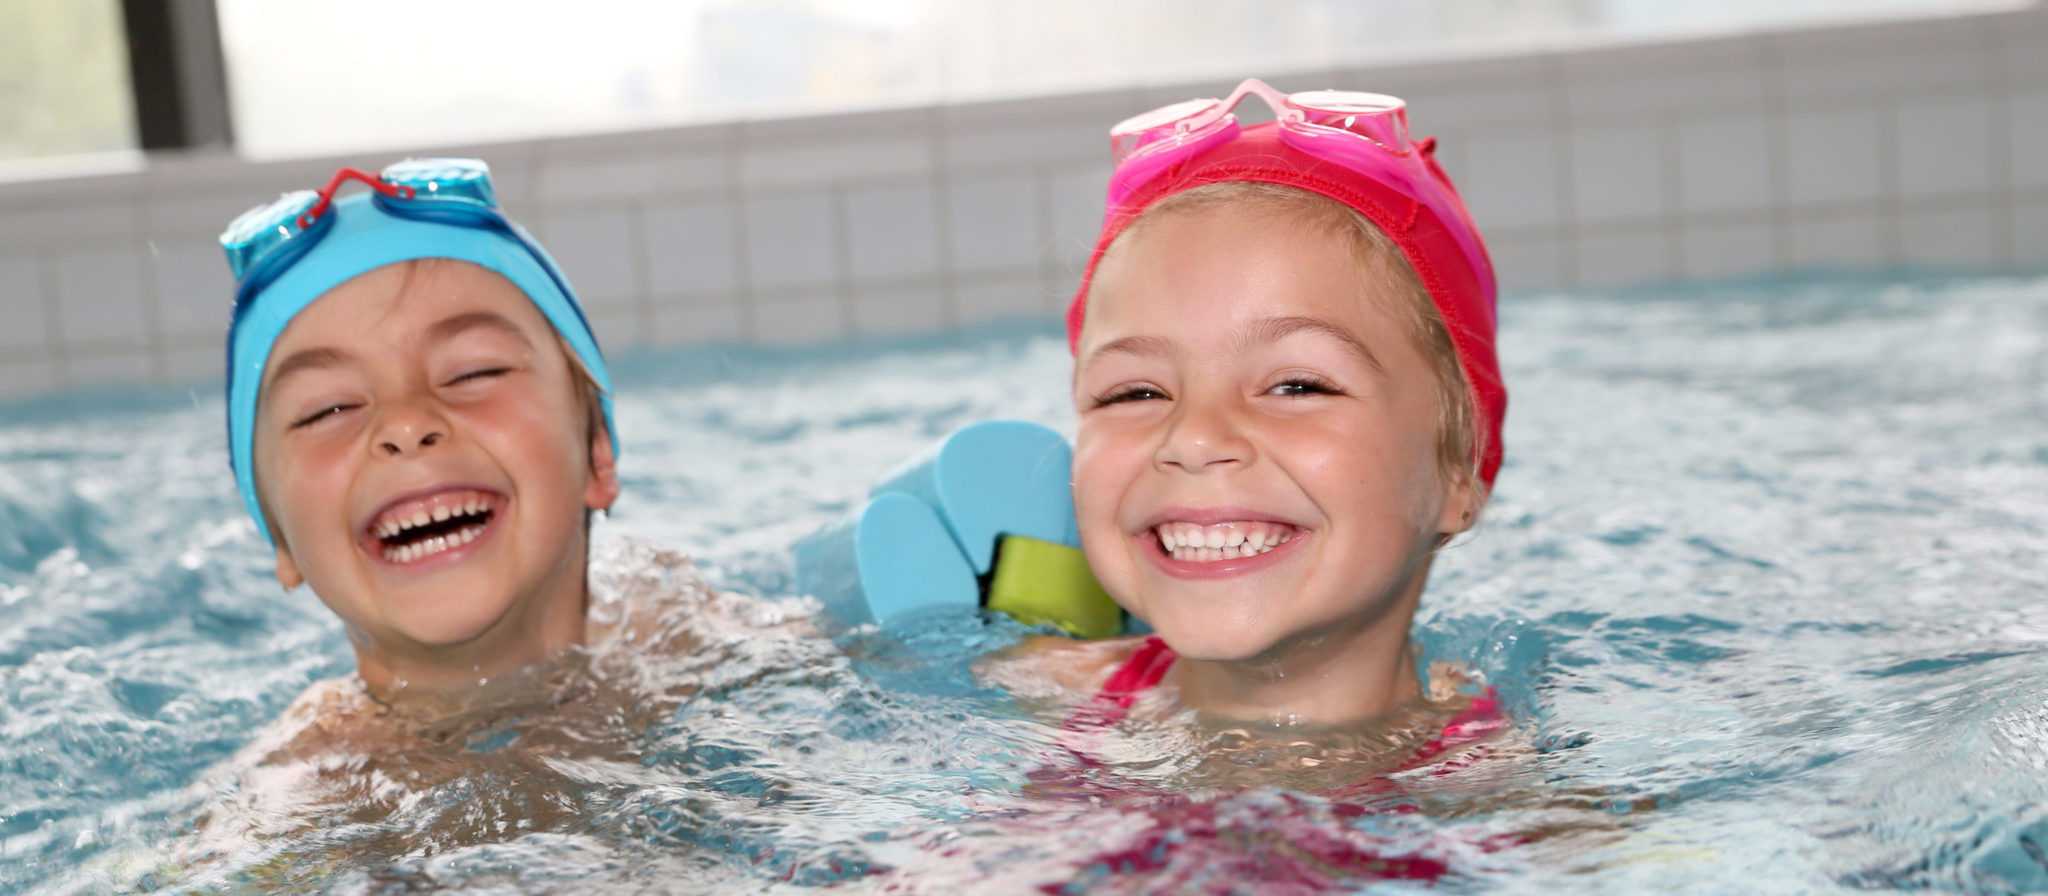 One of the many benefits of swimming for kids involves easy exercise that is actually fun.